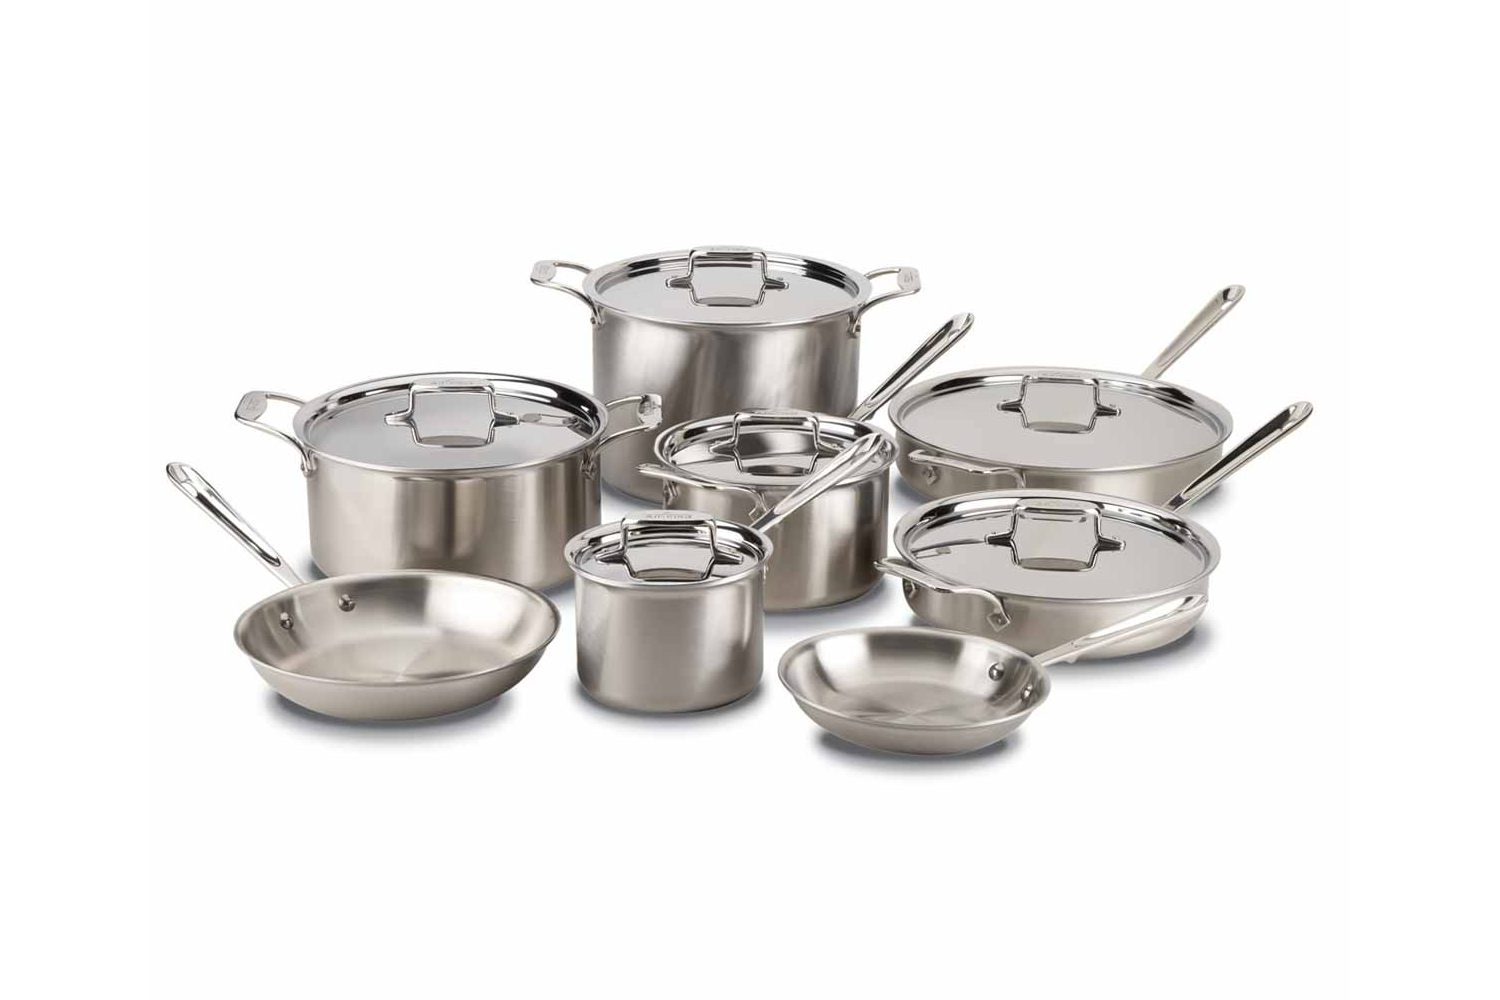 All-Clad d5 Brushed Stainless 14 Piece Cookware Set